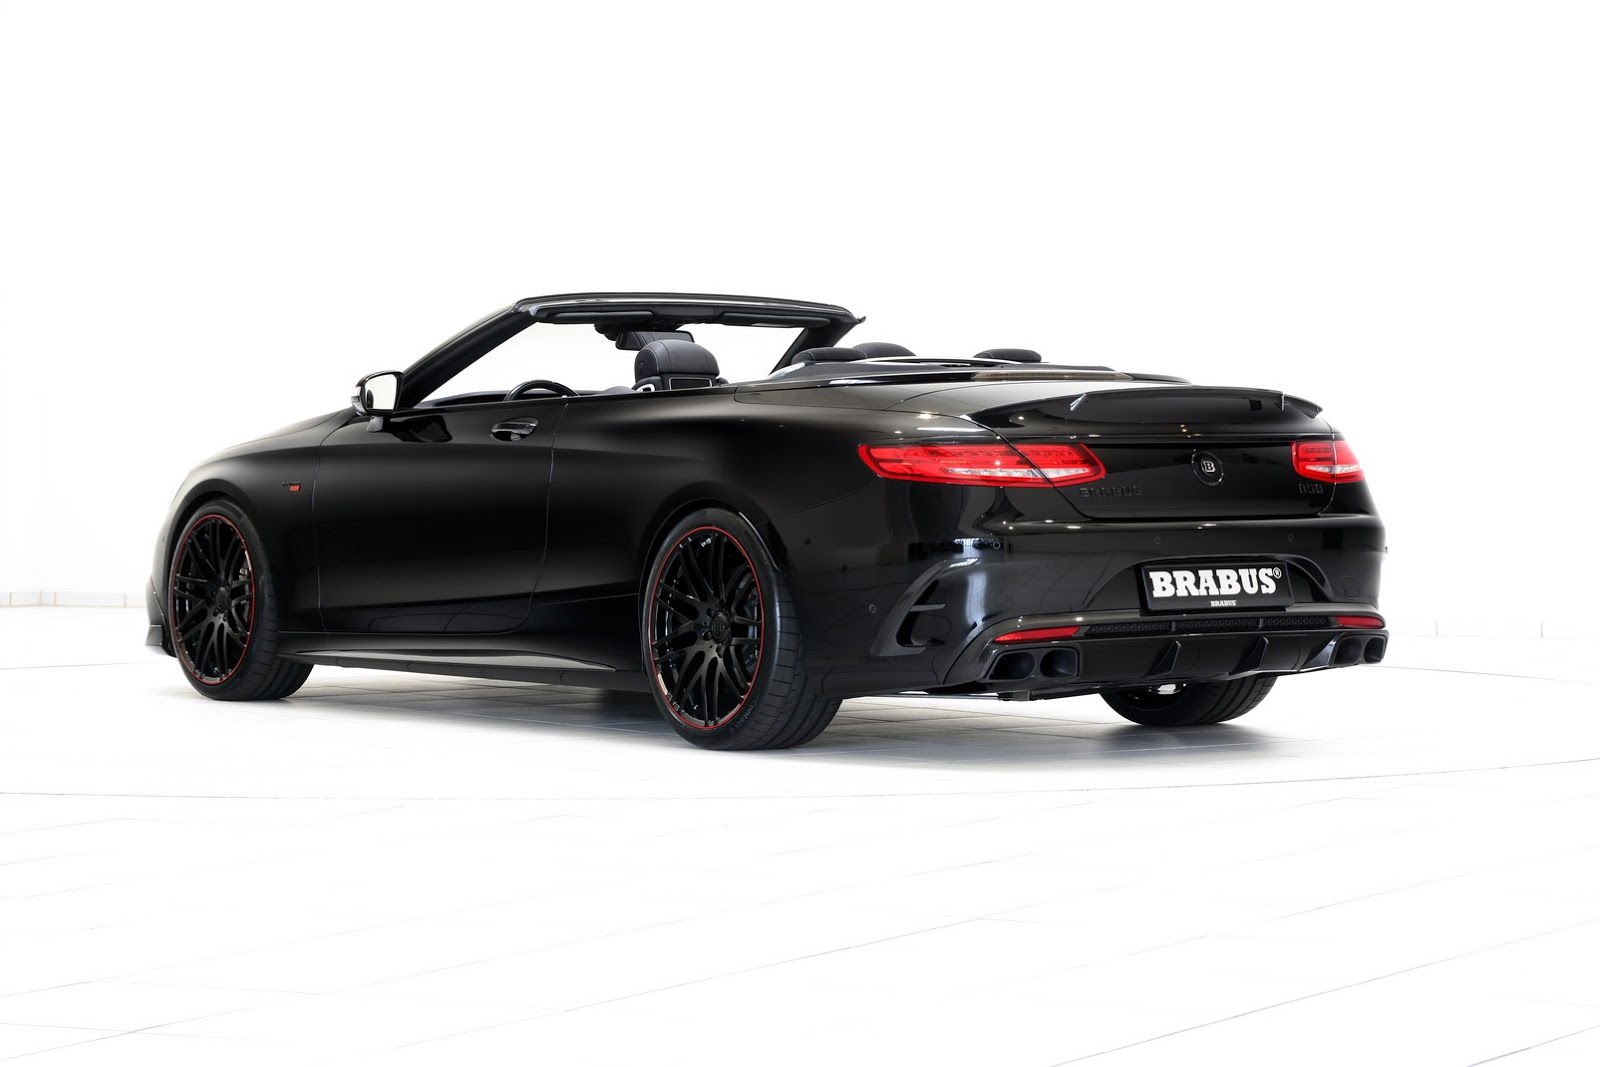 new brabus 850 6 0 biturbo is the world s fastest and most powerful four seater convertible. Black Bedroom Furniture Sets. Home Design Ideas